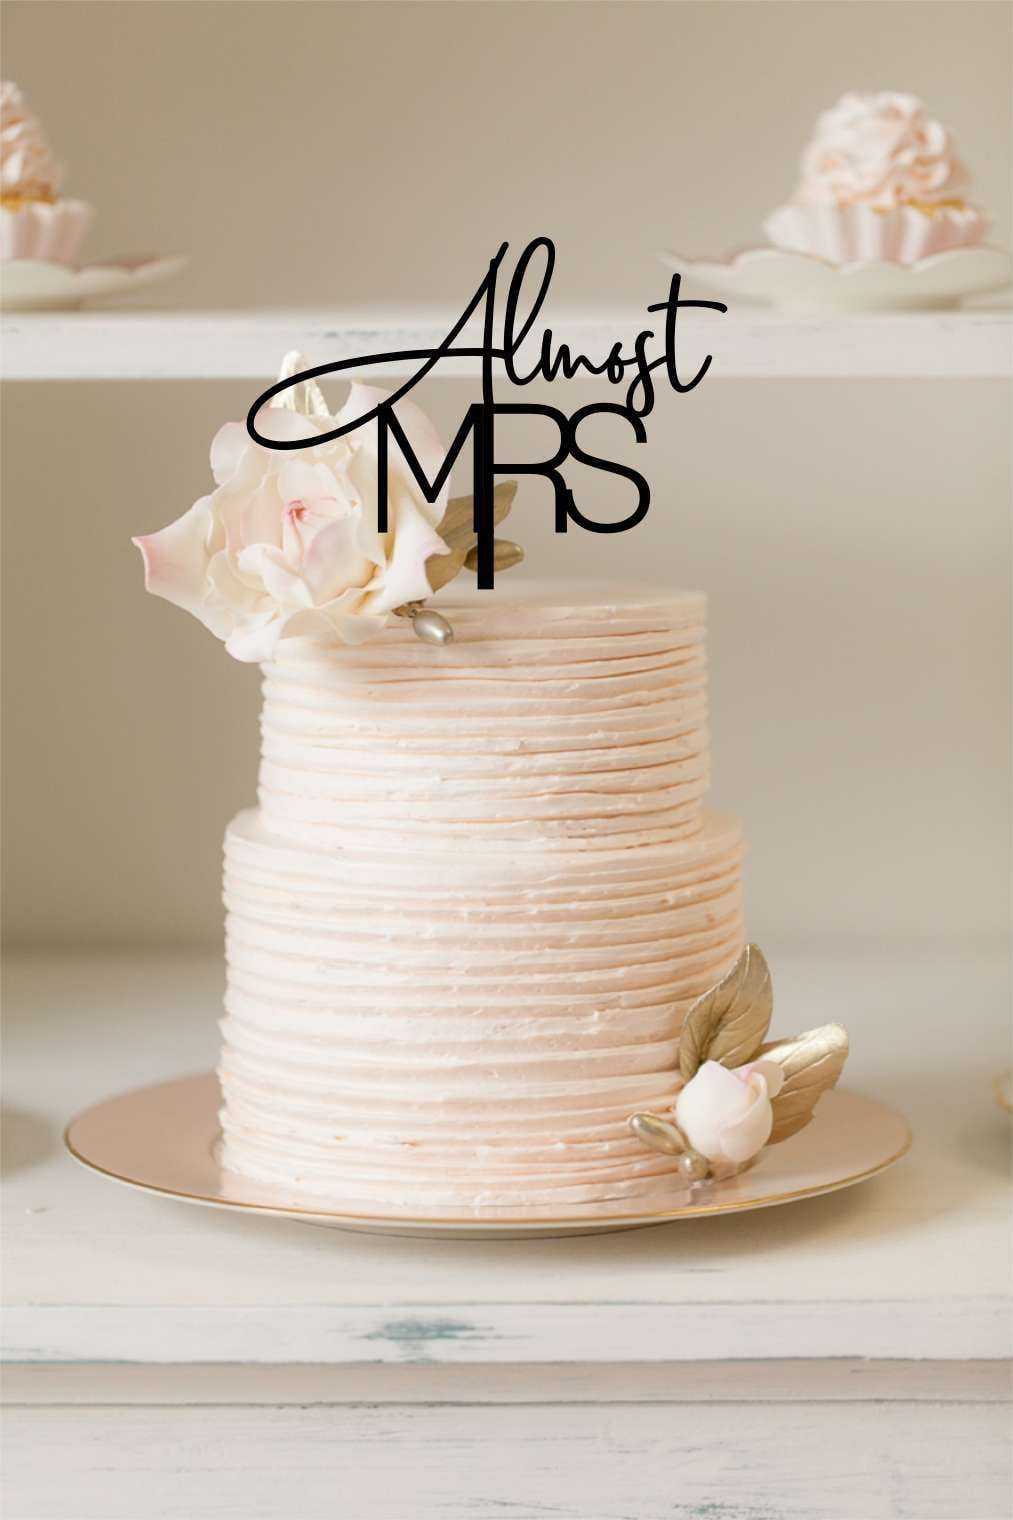 Cake Topper - Almost Mrs